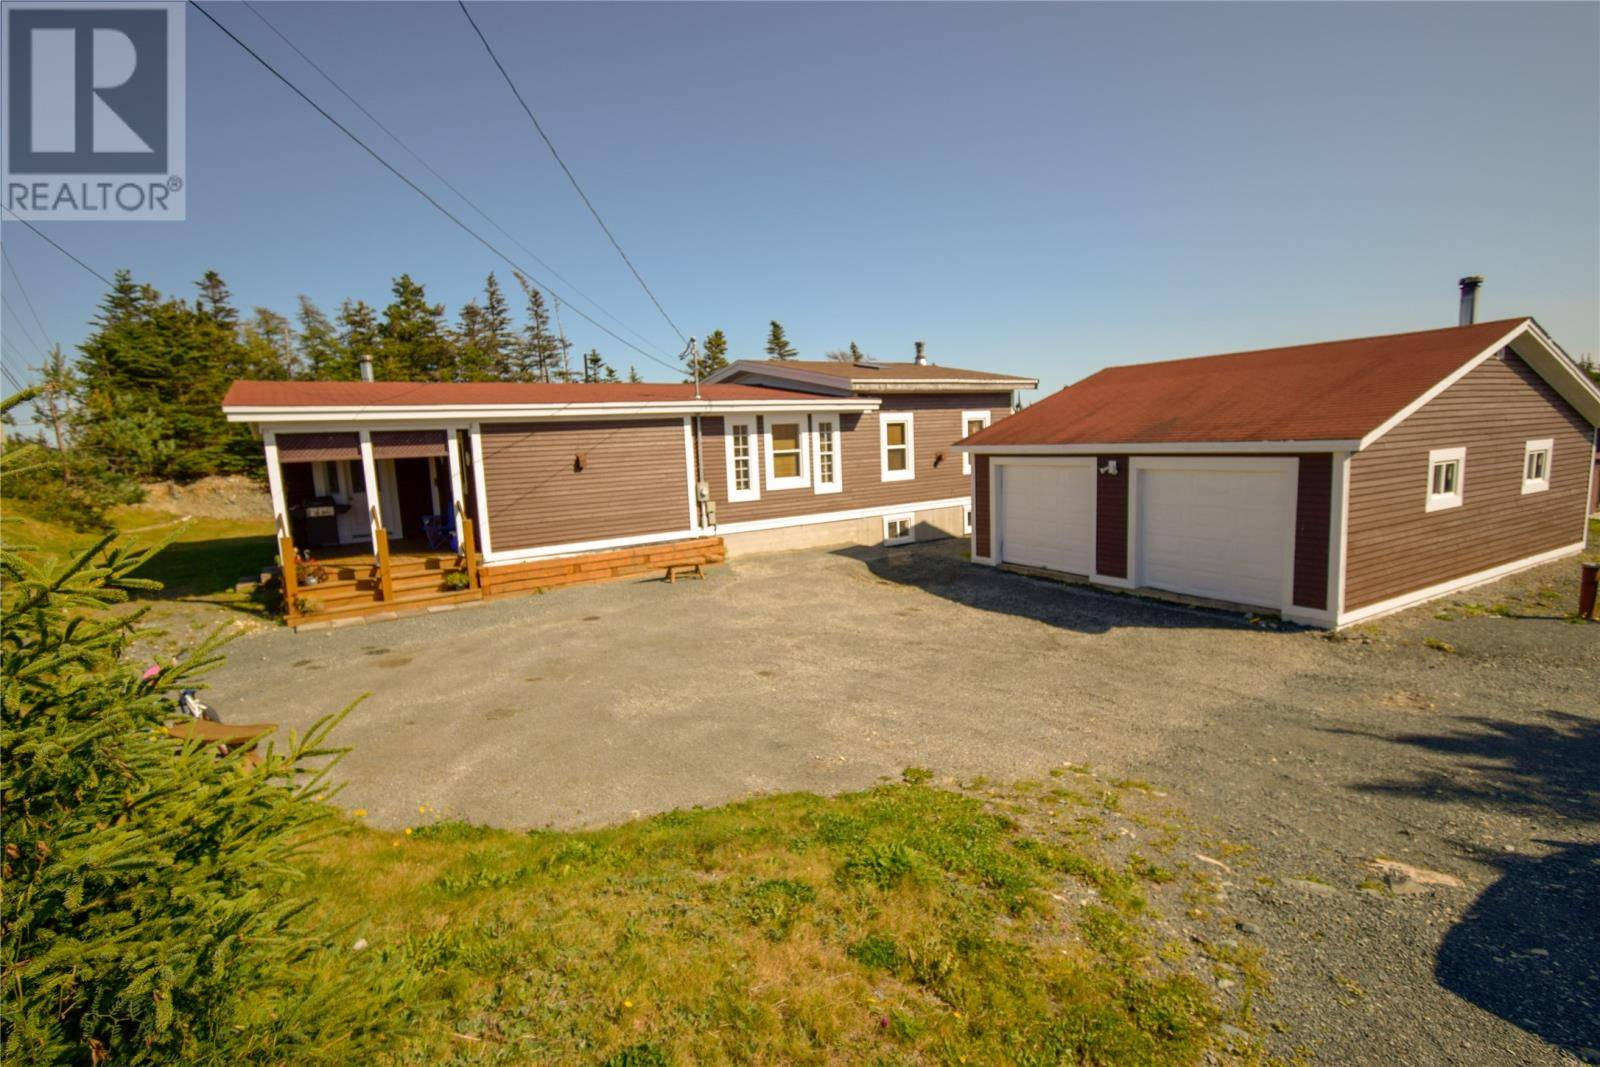 House for sale at 741 Indian Meal Line Portugal Cove/st. Philip's Newfoundland - MLS: 1203274